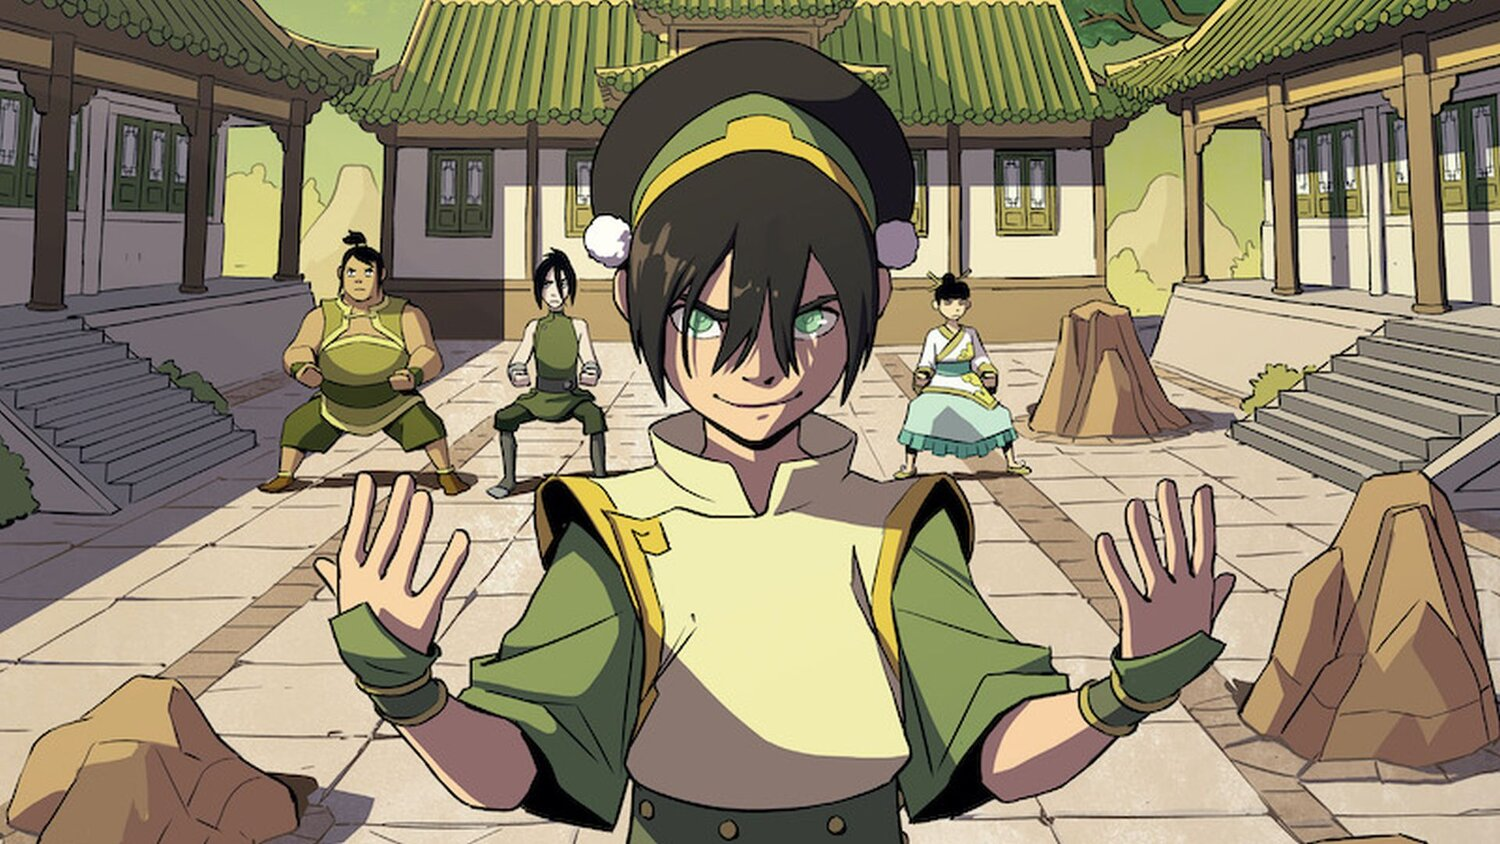 Toph Beifong is Getting Her Own Graphic Novel Story in TOPH BEIFONG'S METALBENDING ACADEMY